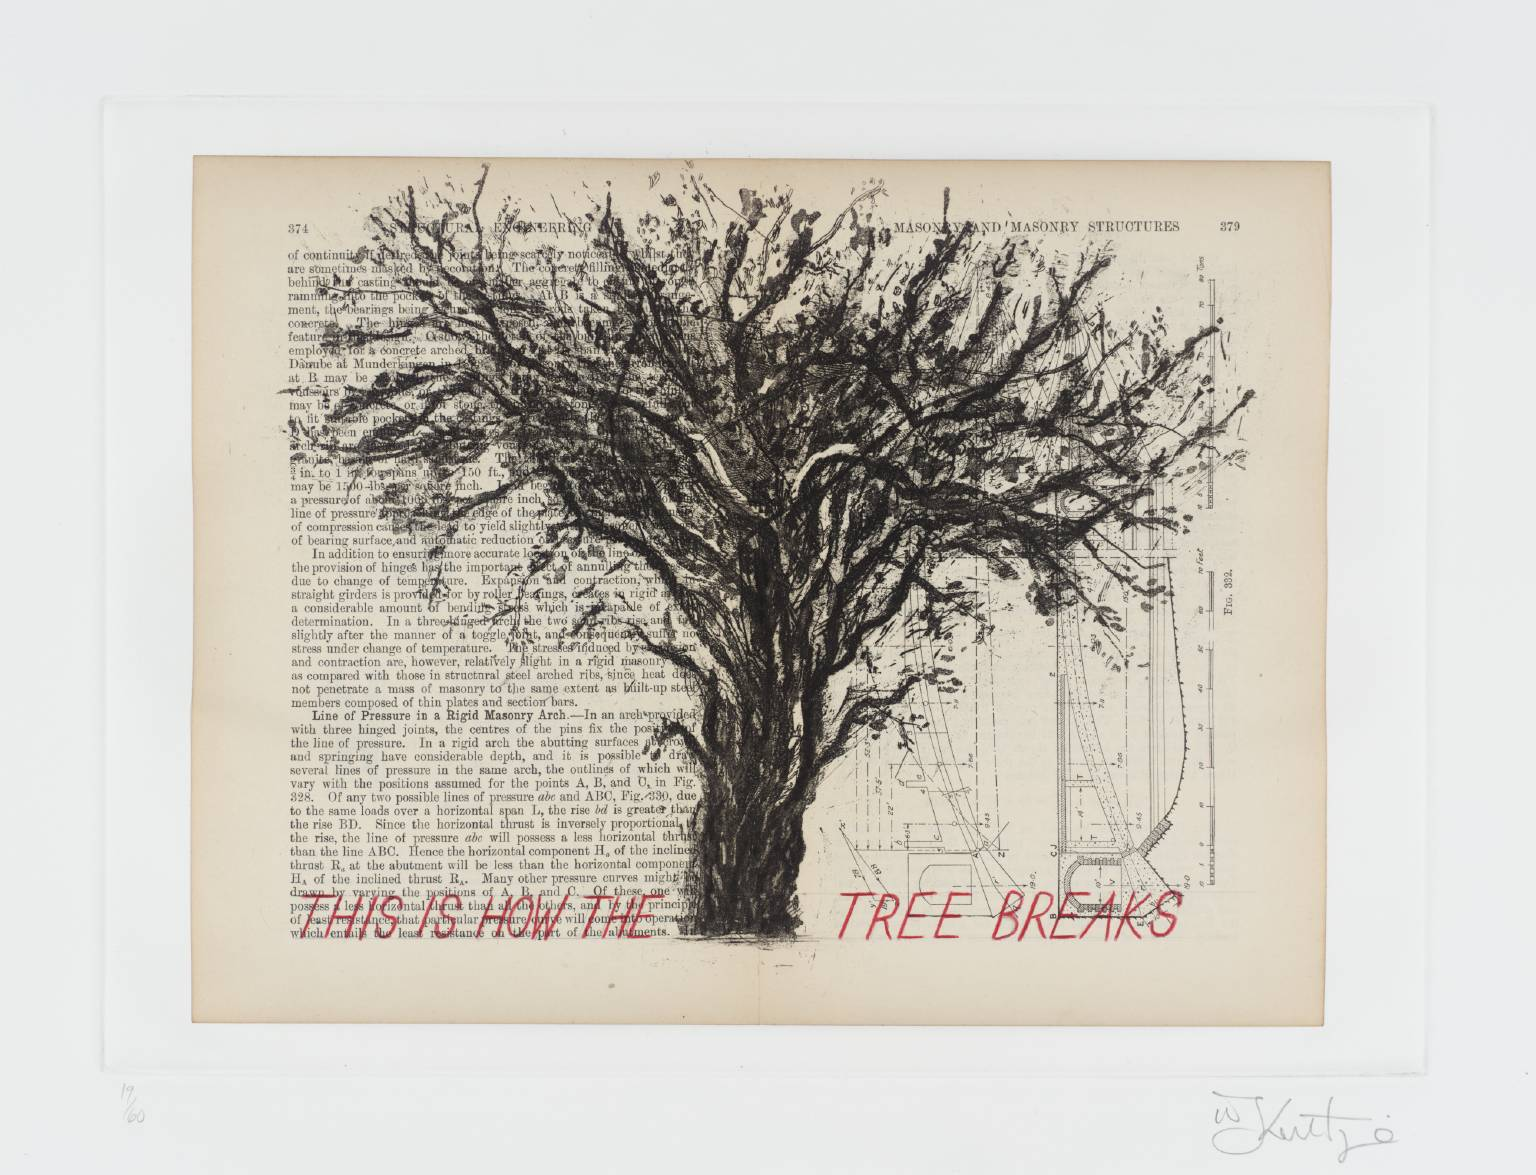 This Is How The Tree Breaks,  William Kentridge Tate, 1999